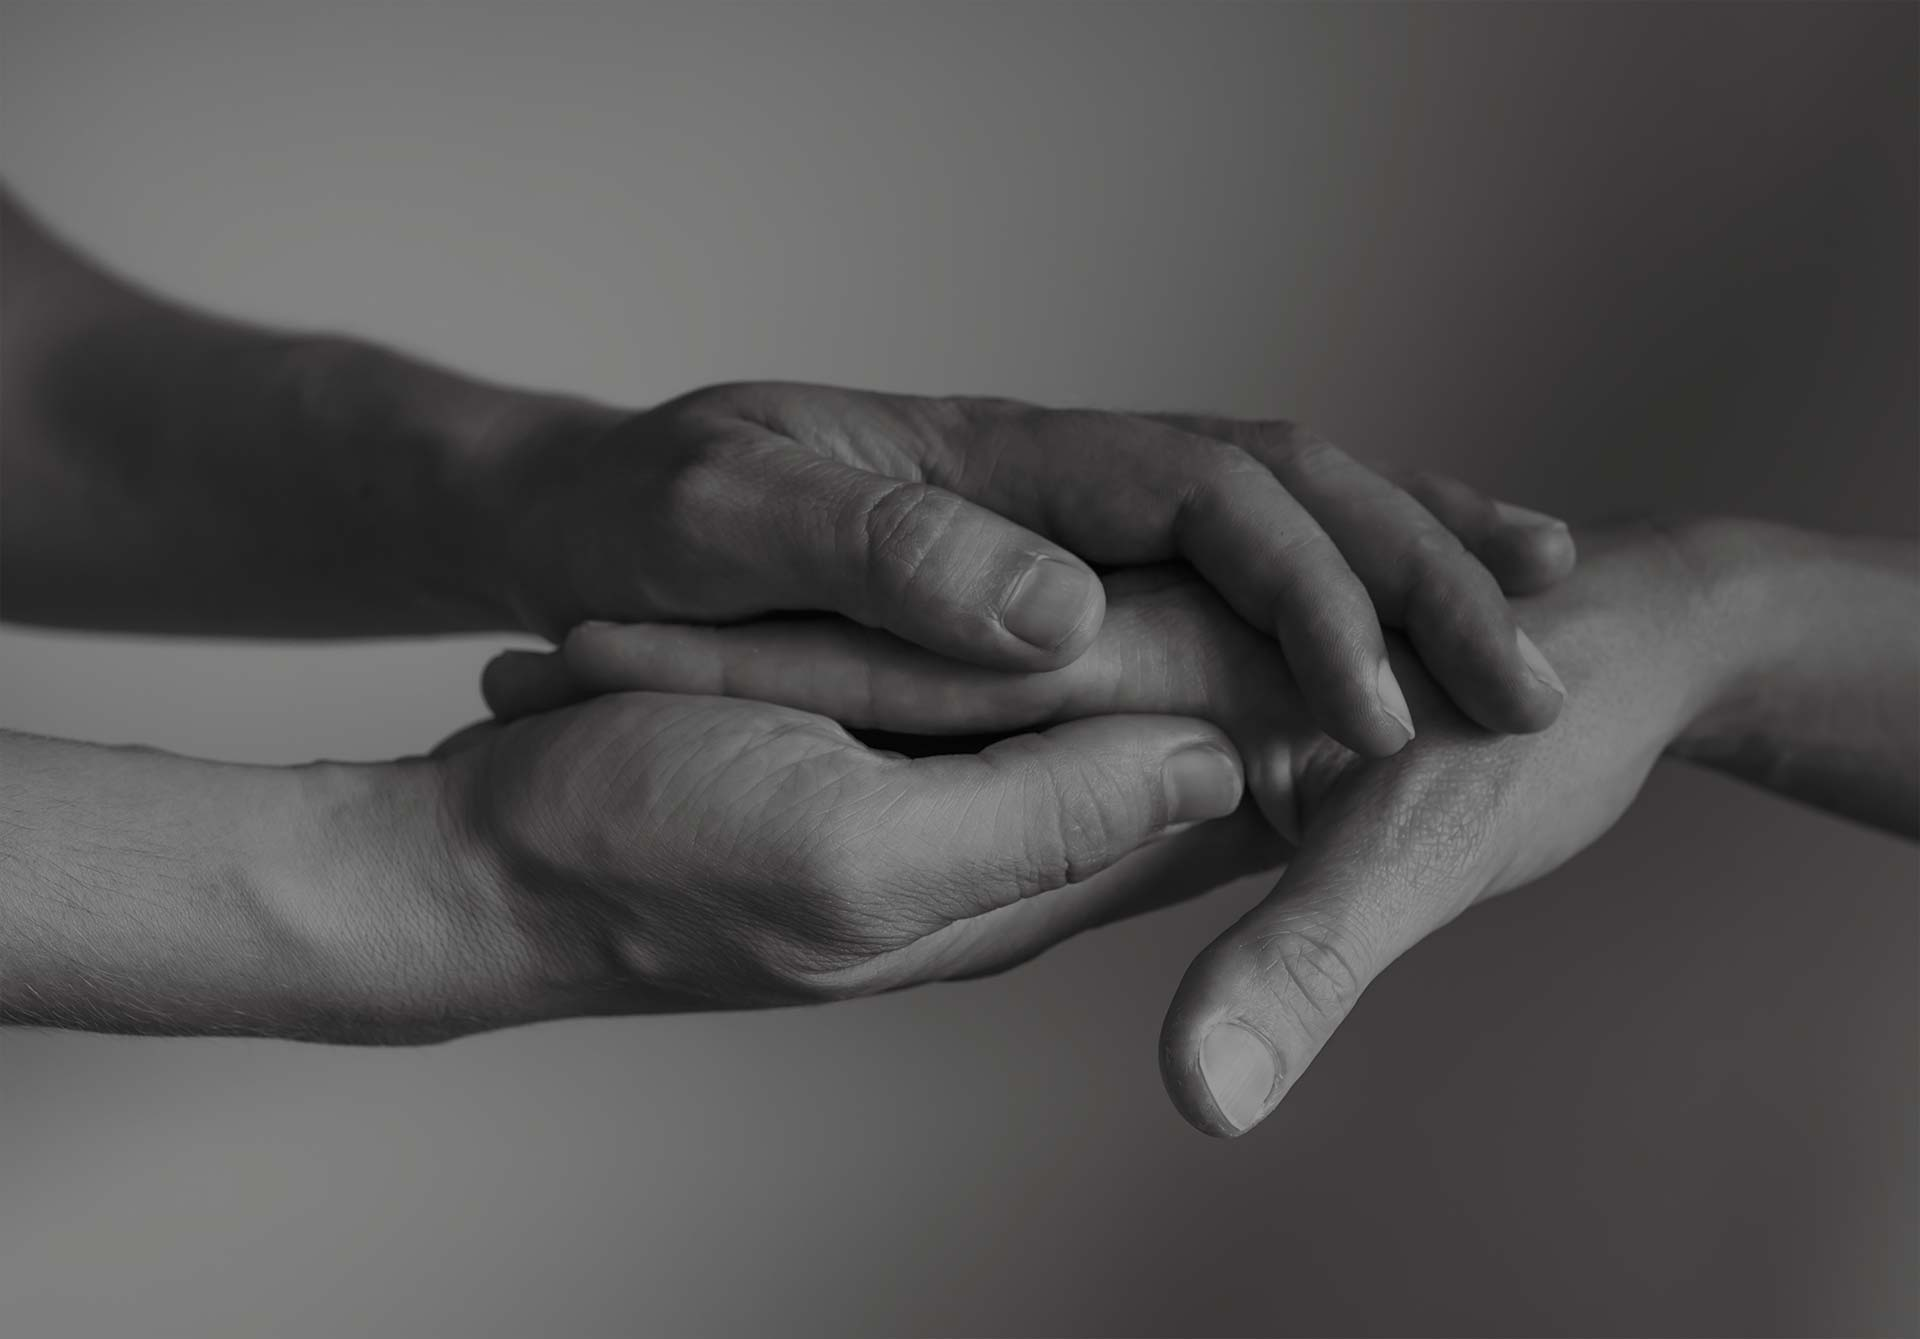 Hand holding another hand